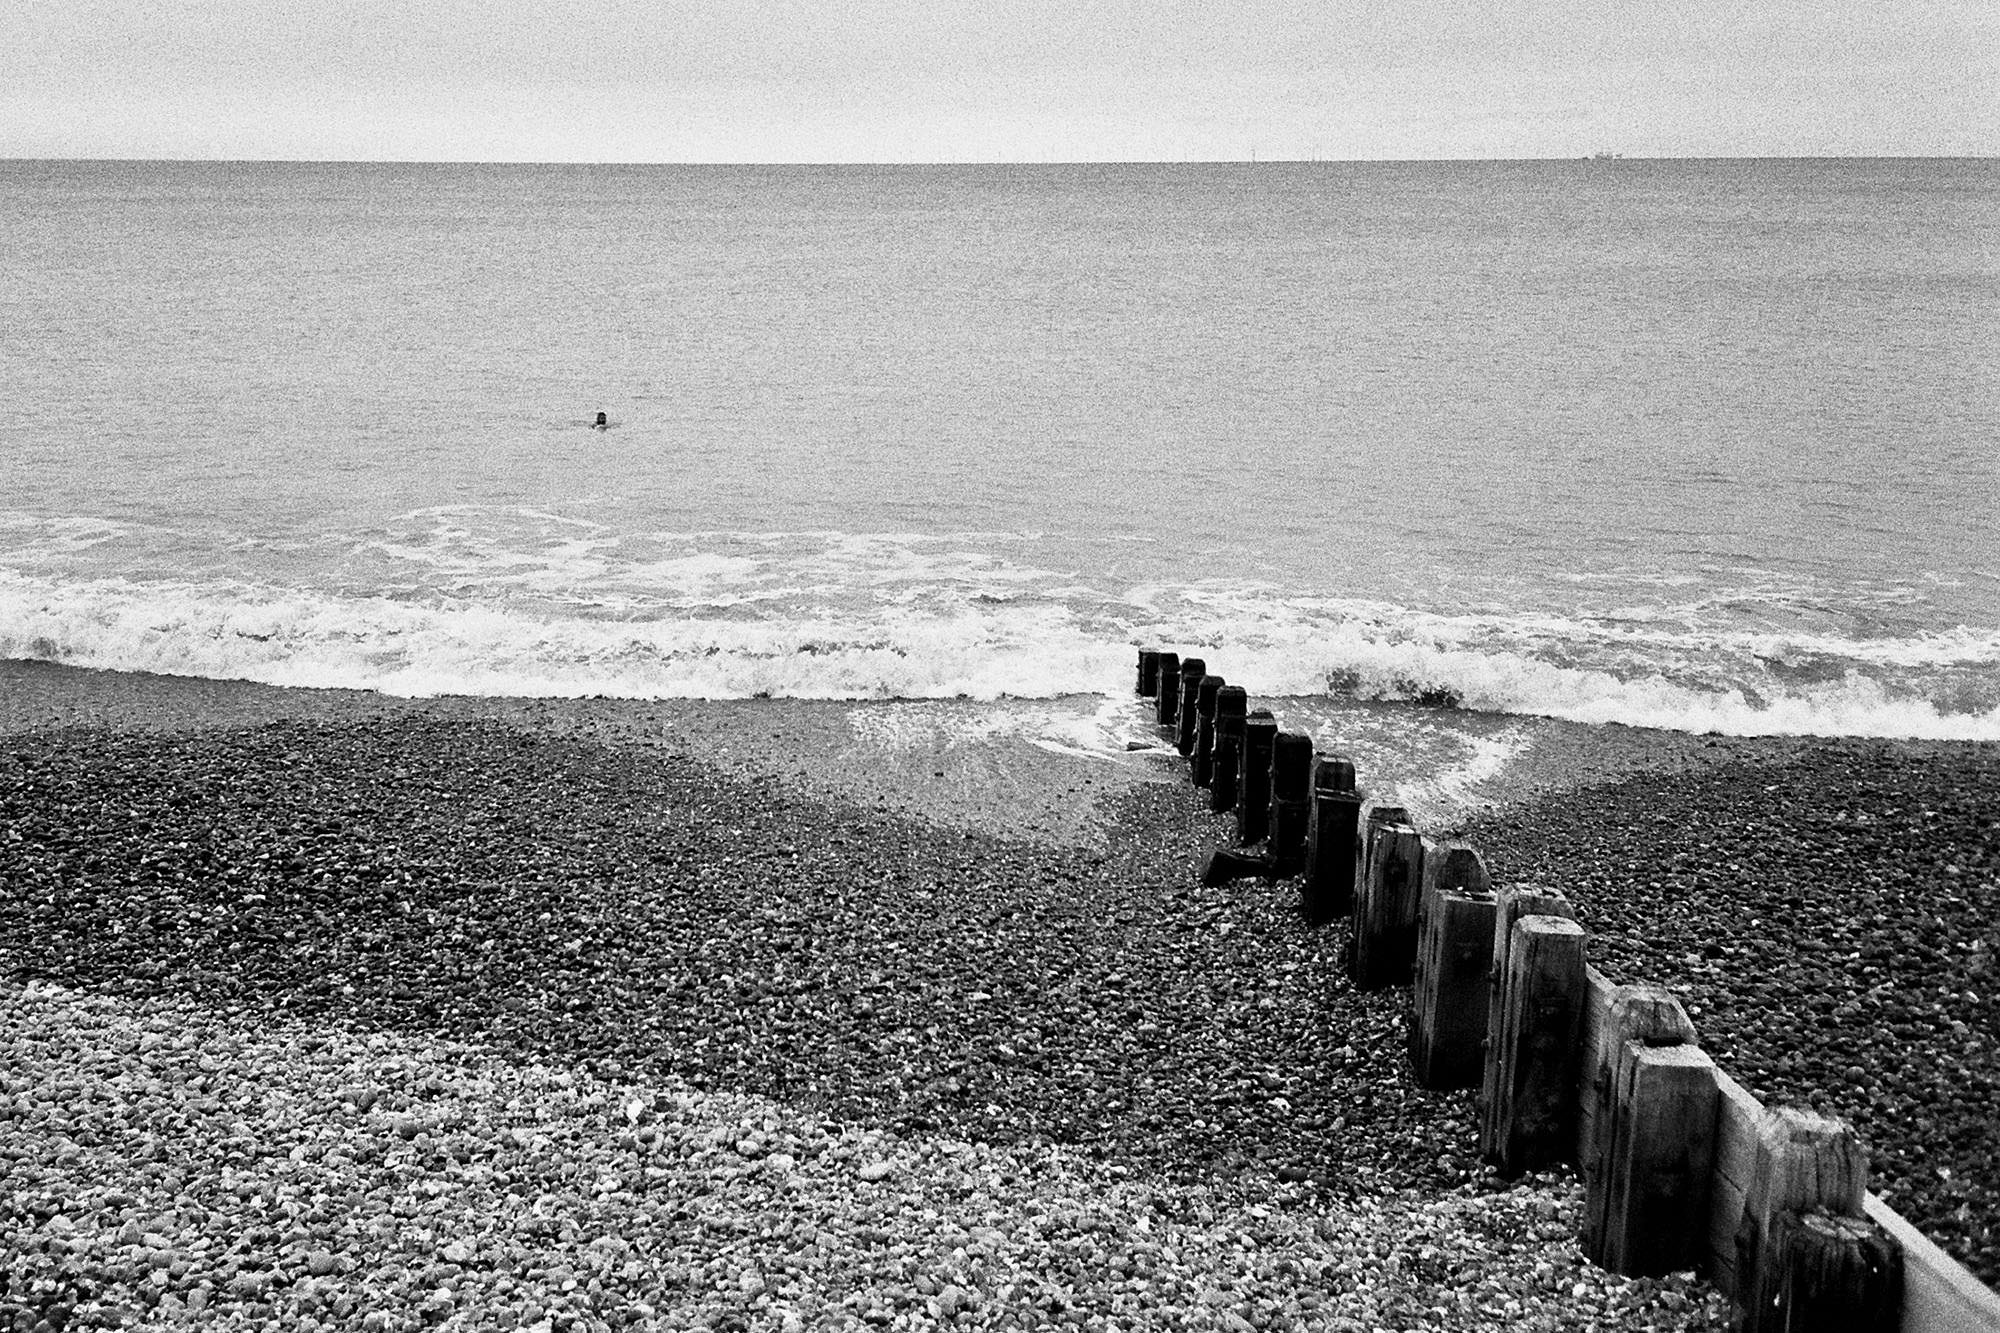 seaswimmer-cold-weather-black-and-white